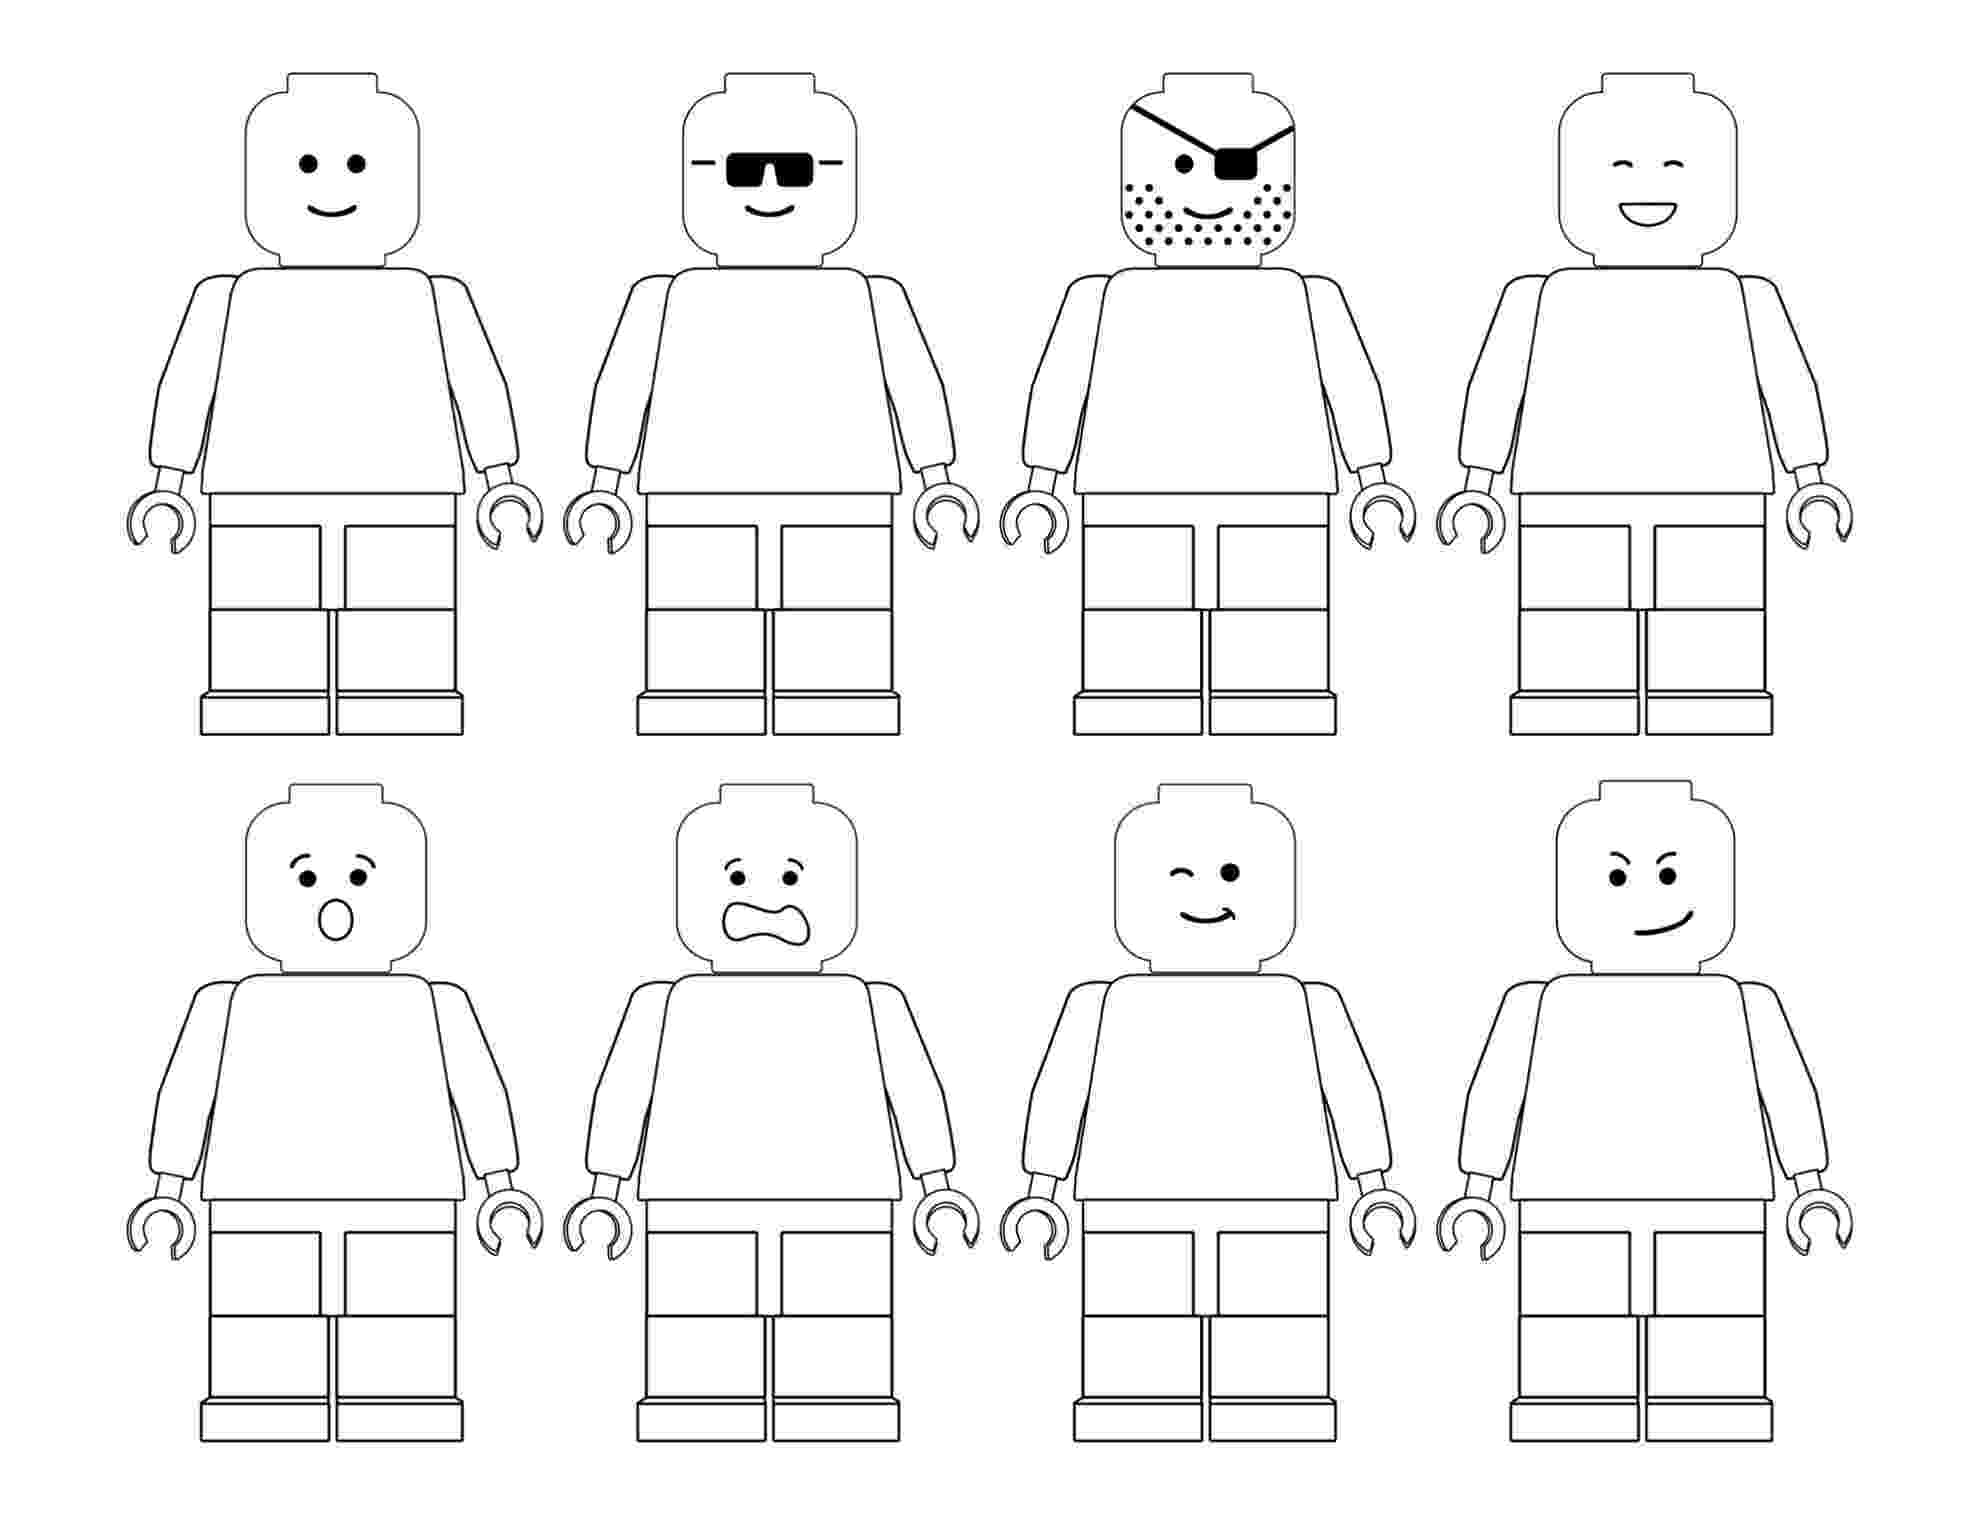 lego figure coloring pages lego minifigures coloring pages coloring pages to pages coloring figure lego